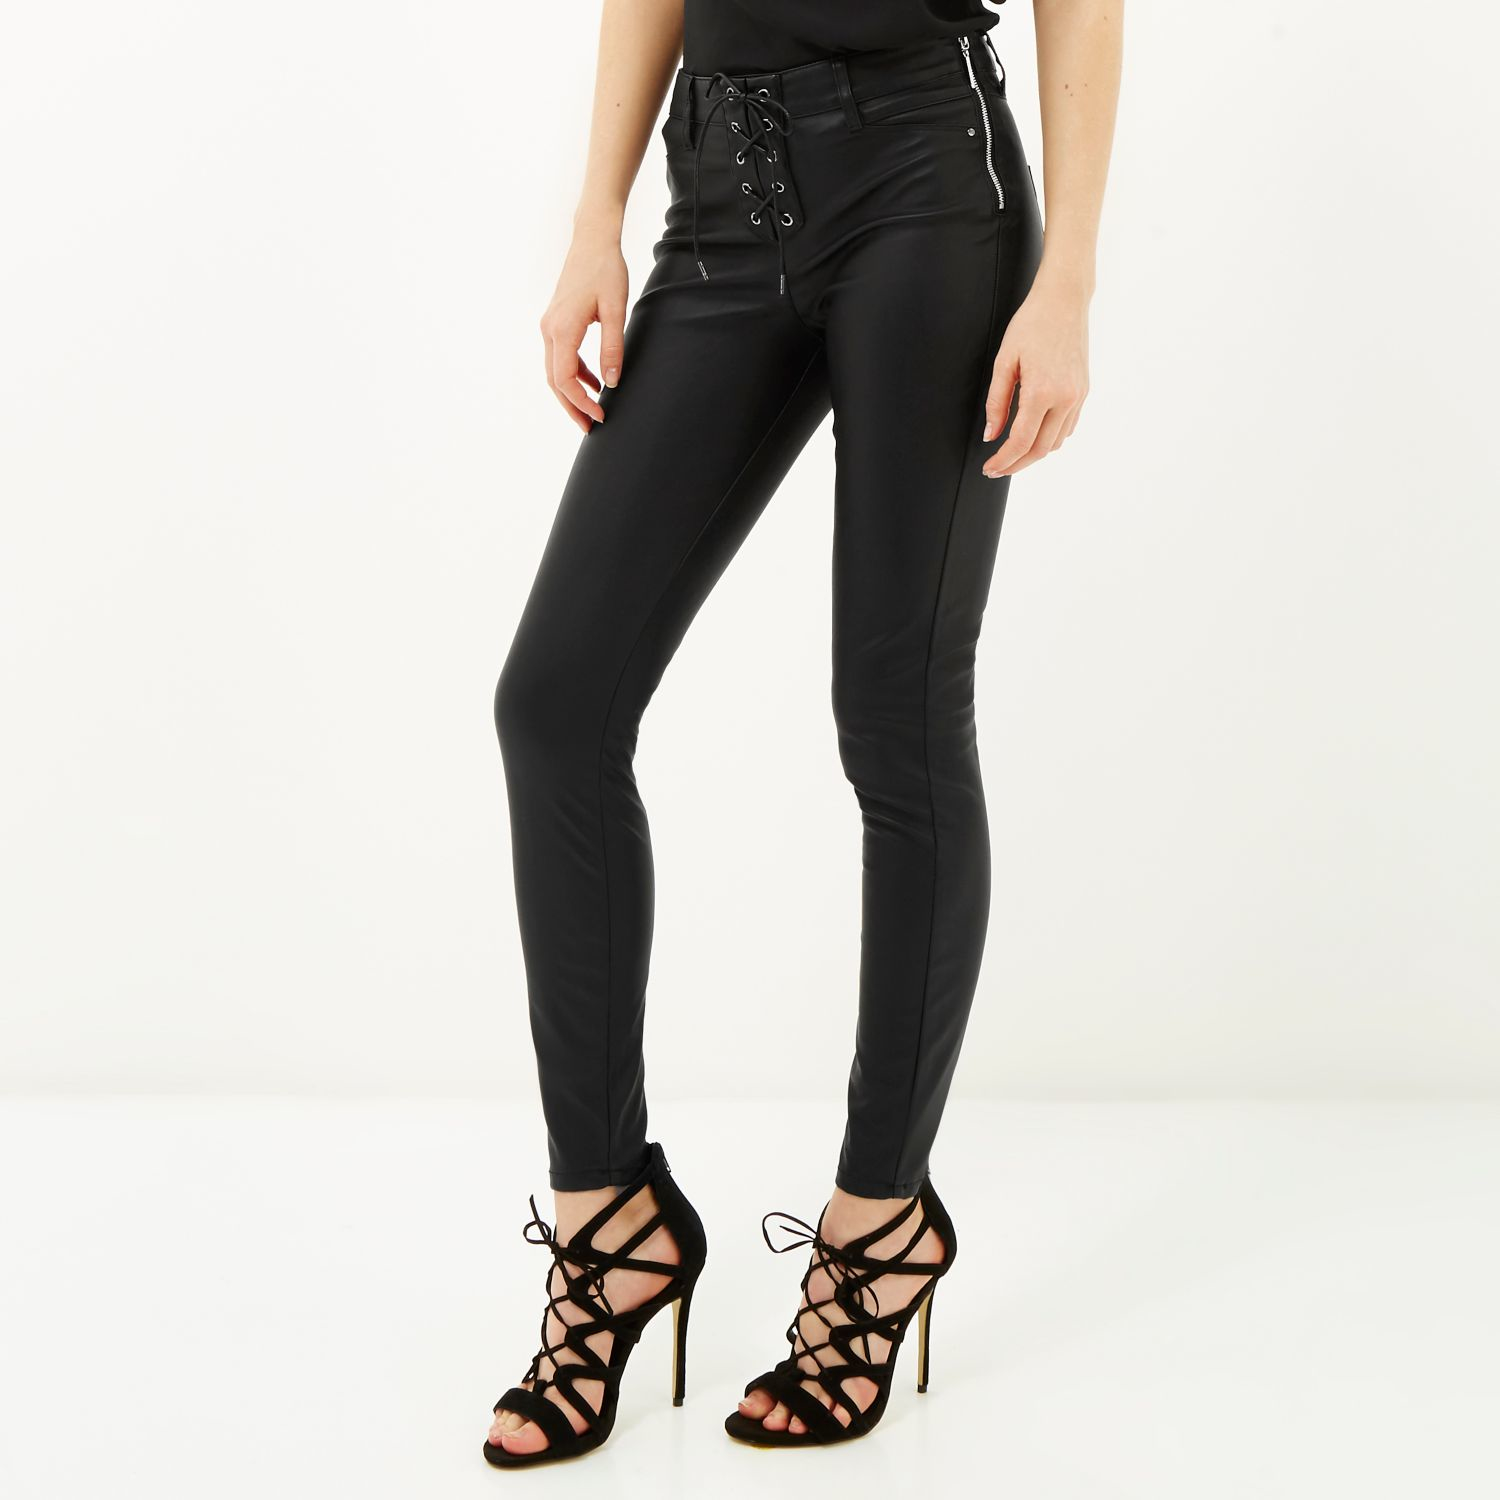 a5628438475f2 River Island Black Lace-up Leather-look Trousers in Black - Lyst